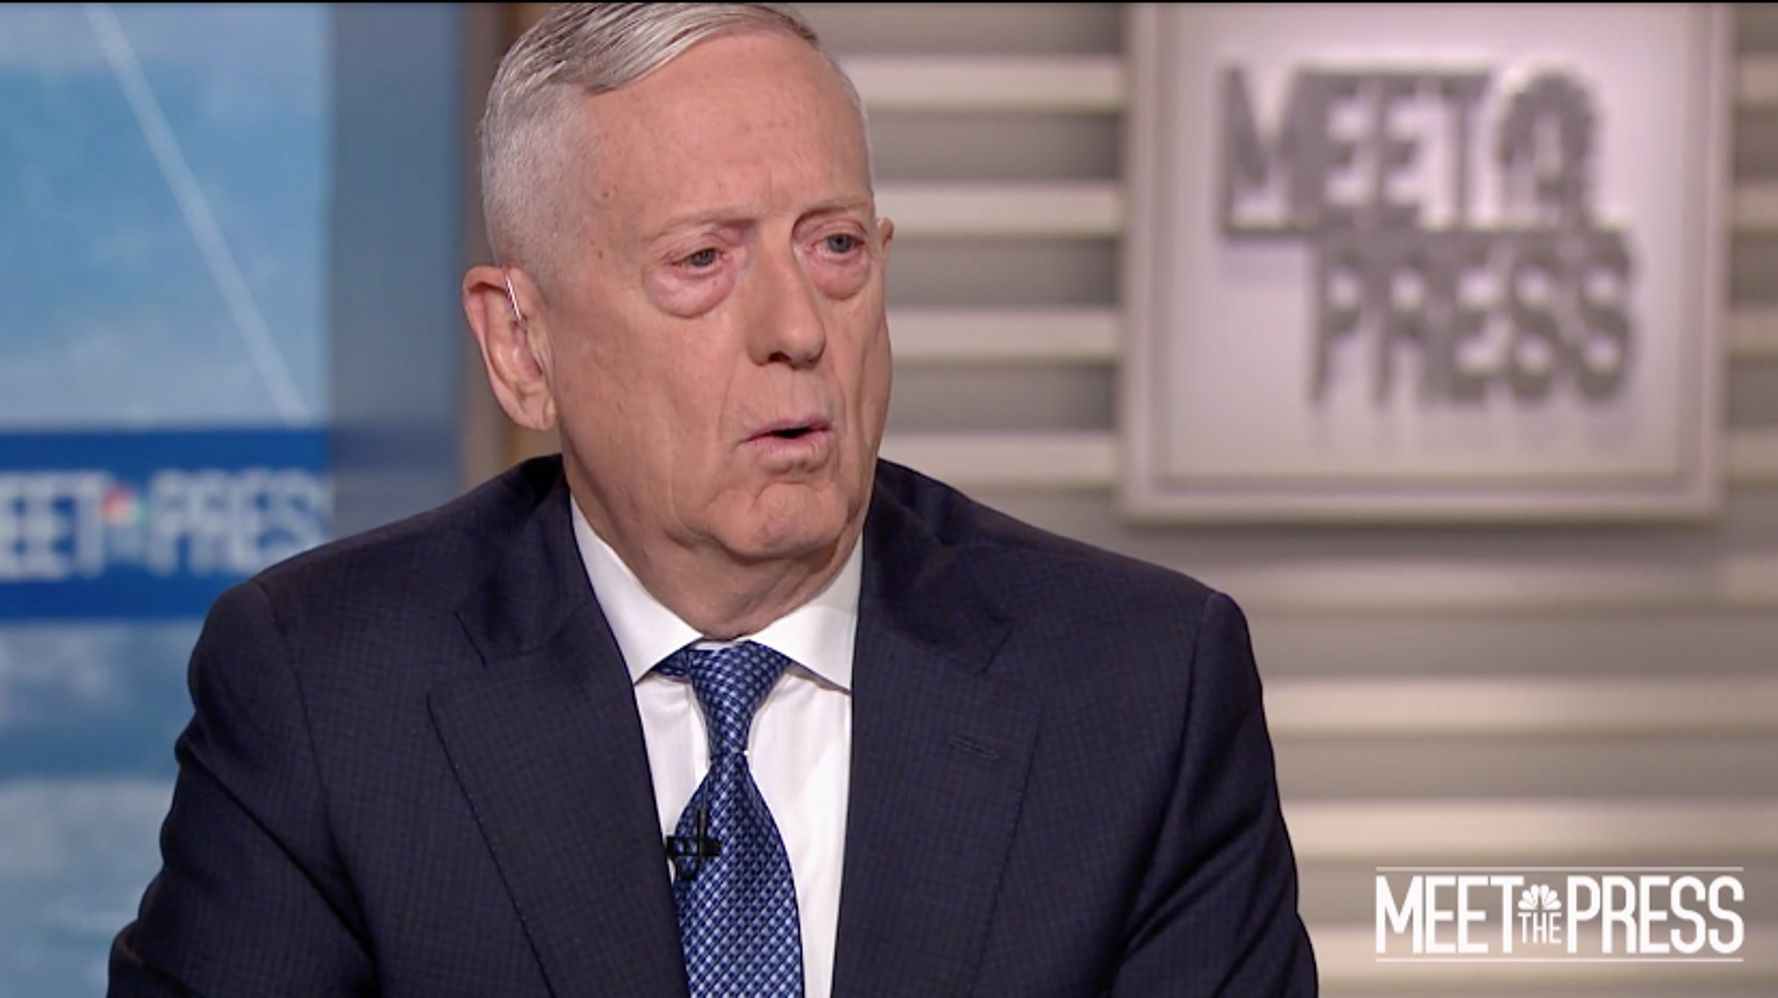 Westlake Legal Group 5da35ca3210000150c344aa3 James Mattis On Trump's Syria Withdrawal: 'Re-Instilling Trust Is Going To Be Very Difficult'